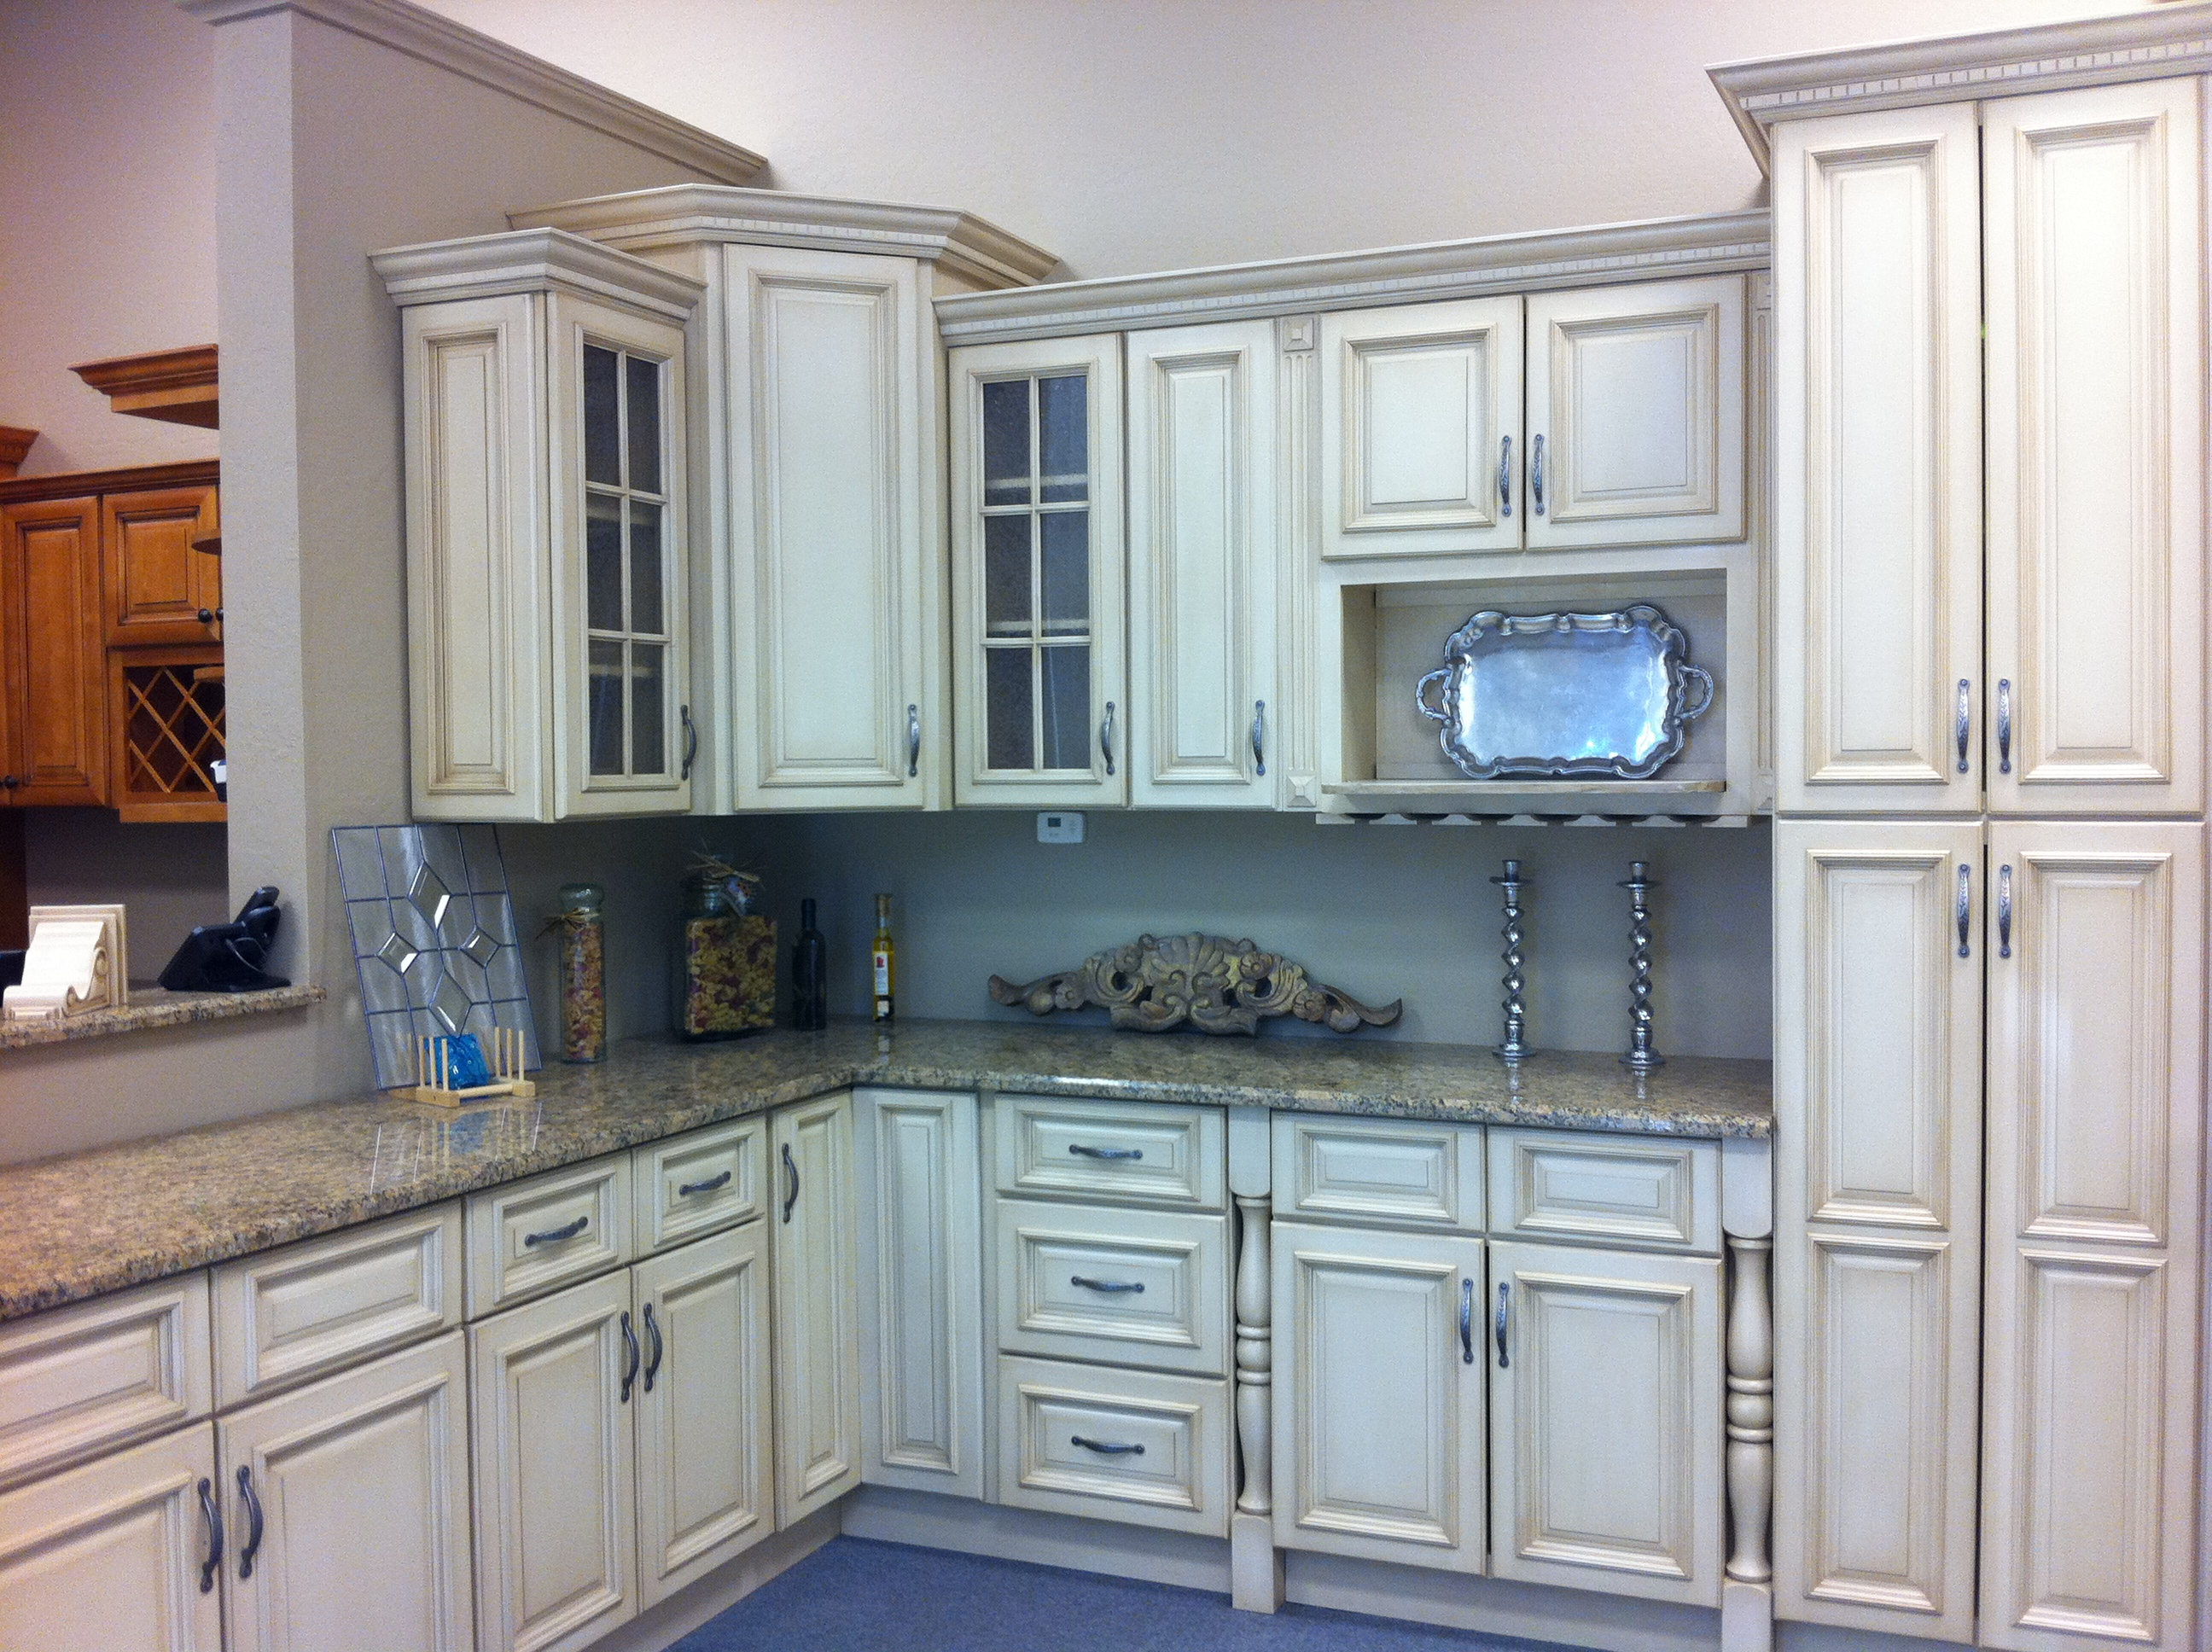 Discount Cabinets - Kitchen Cabinets - Bathroom Cabinets - Solid ...